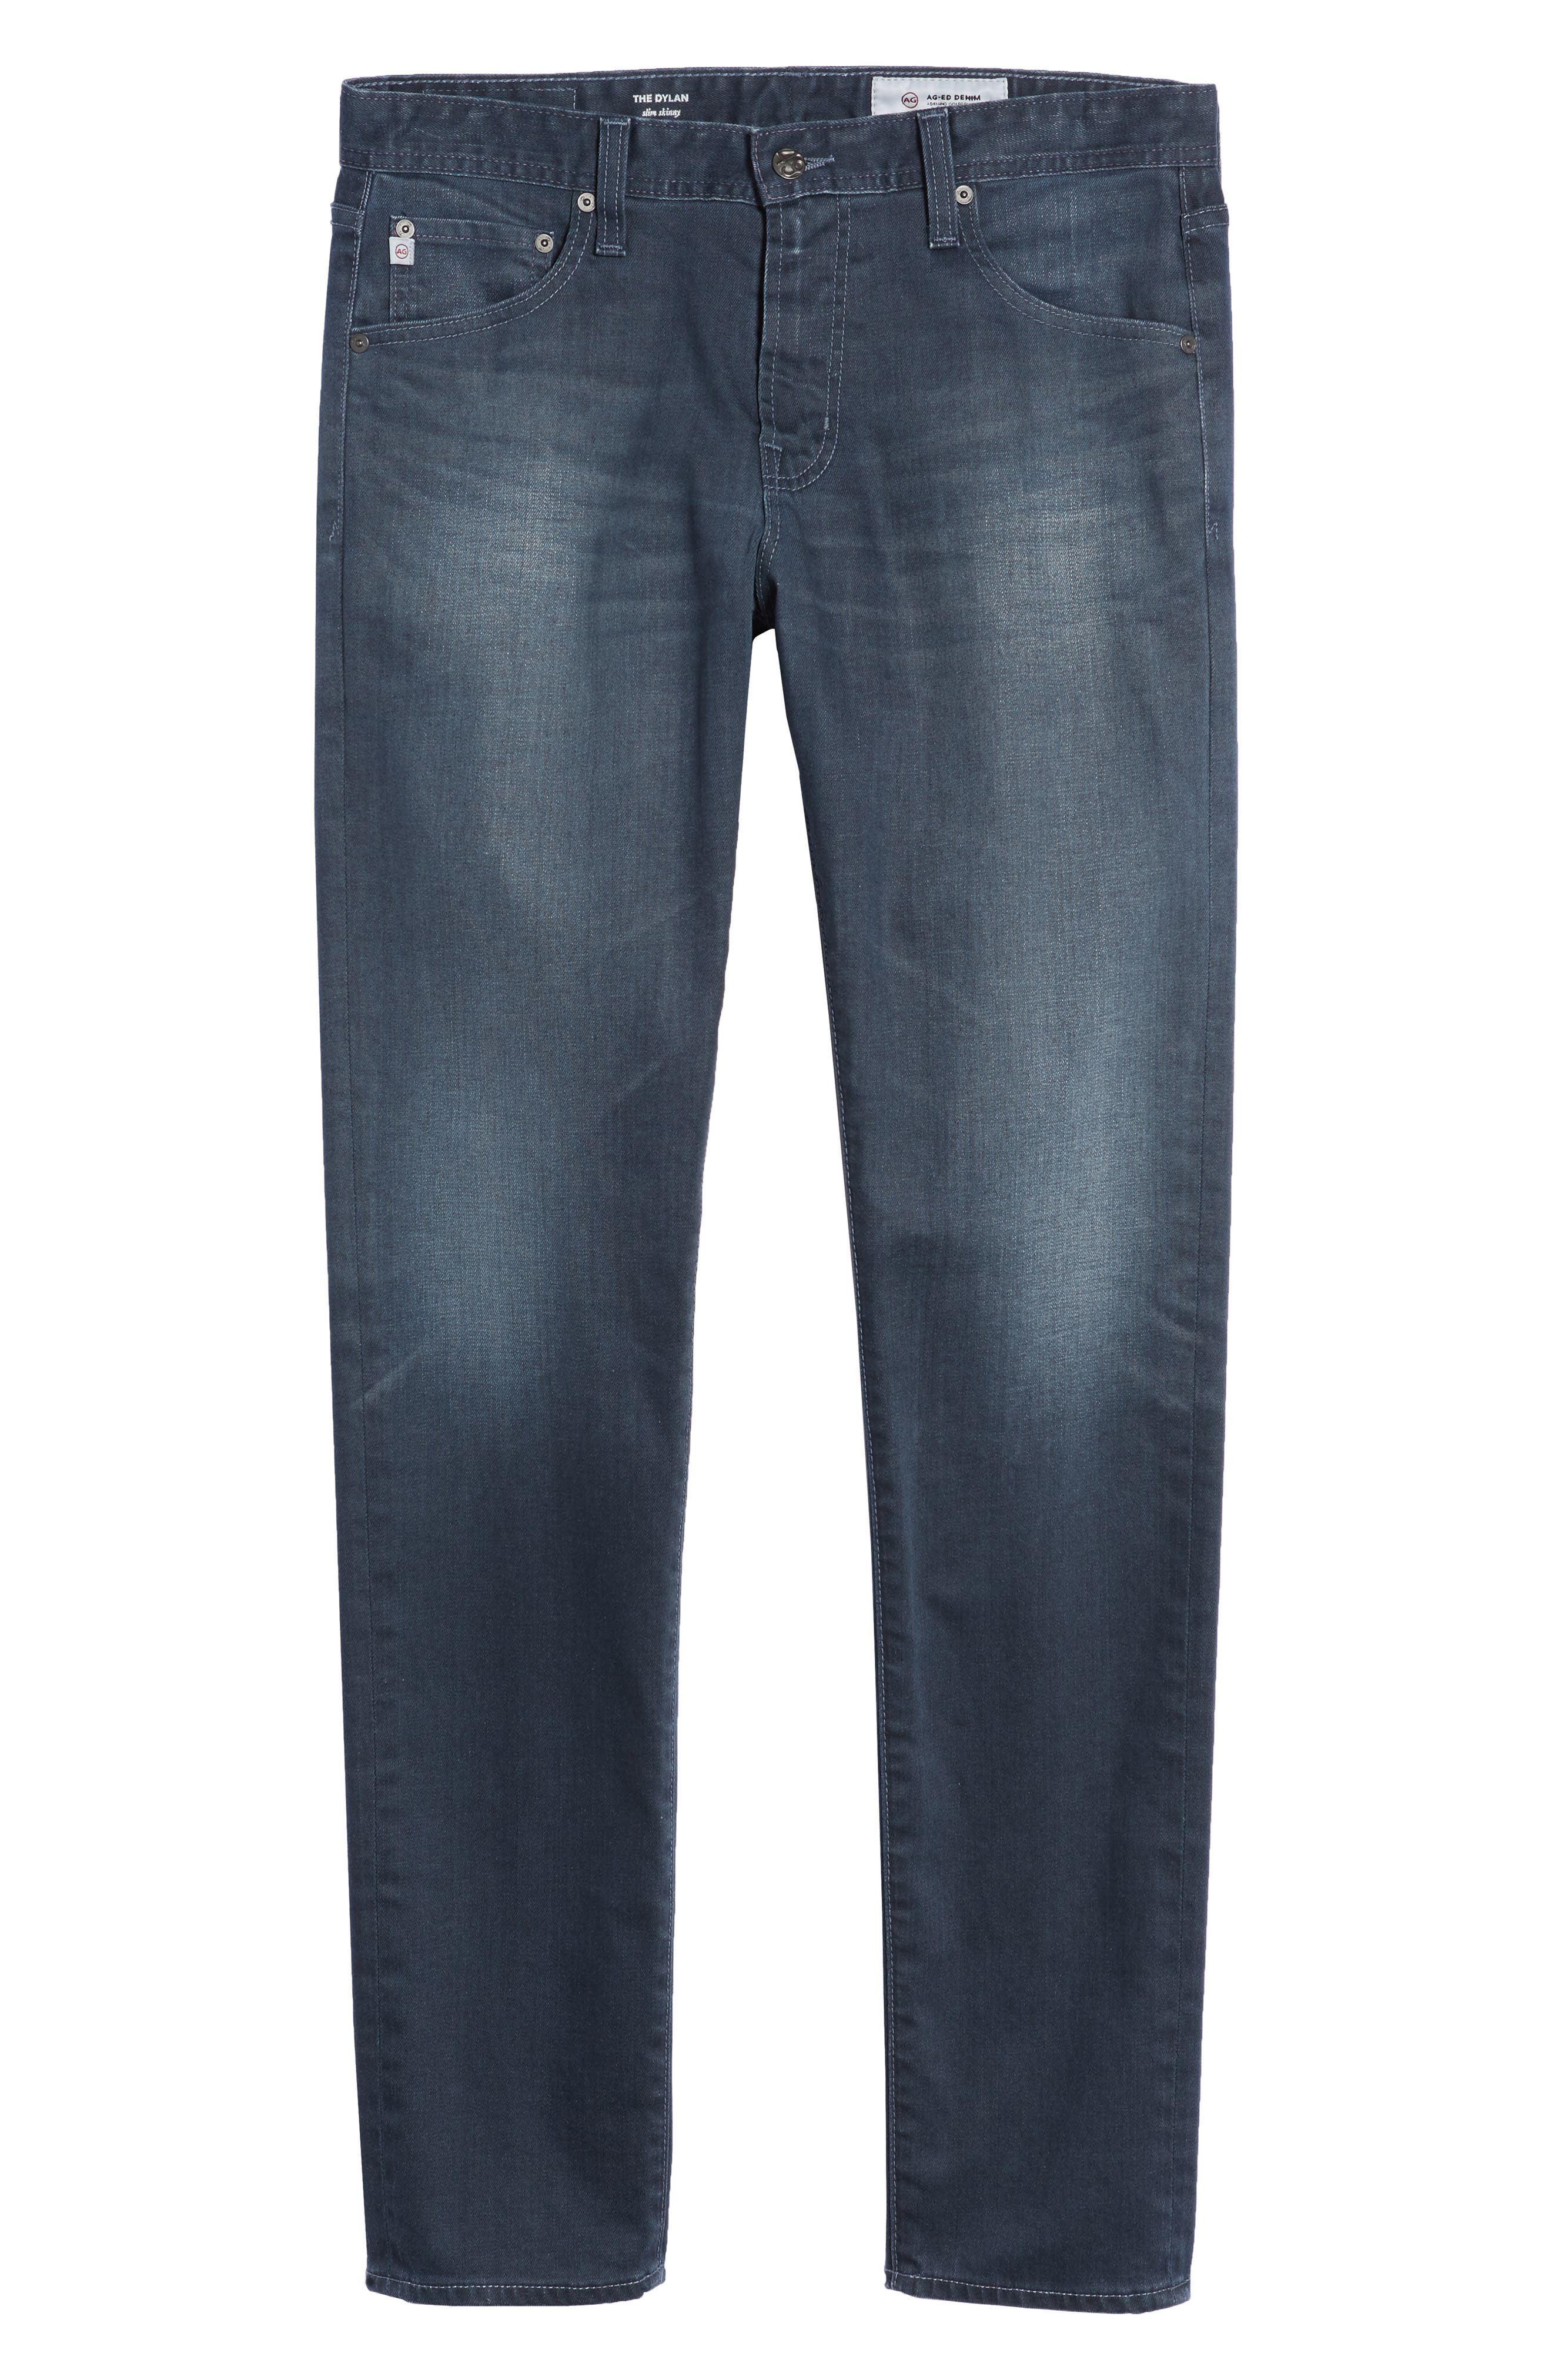 Dylan Skinny Fit Jeans,                             Alternate thumbnail 6, color,                             9 Years Tidepool